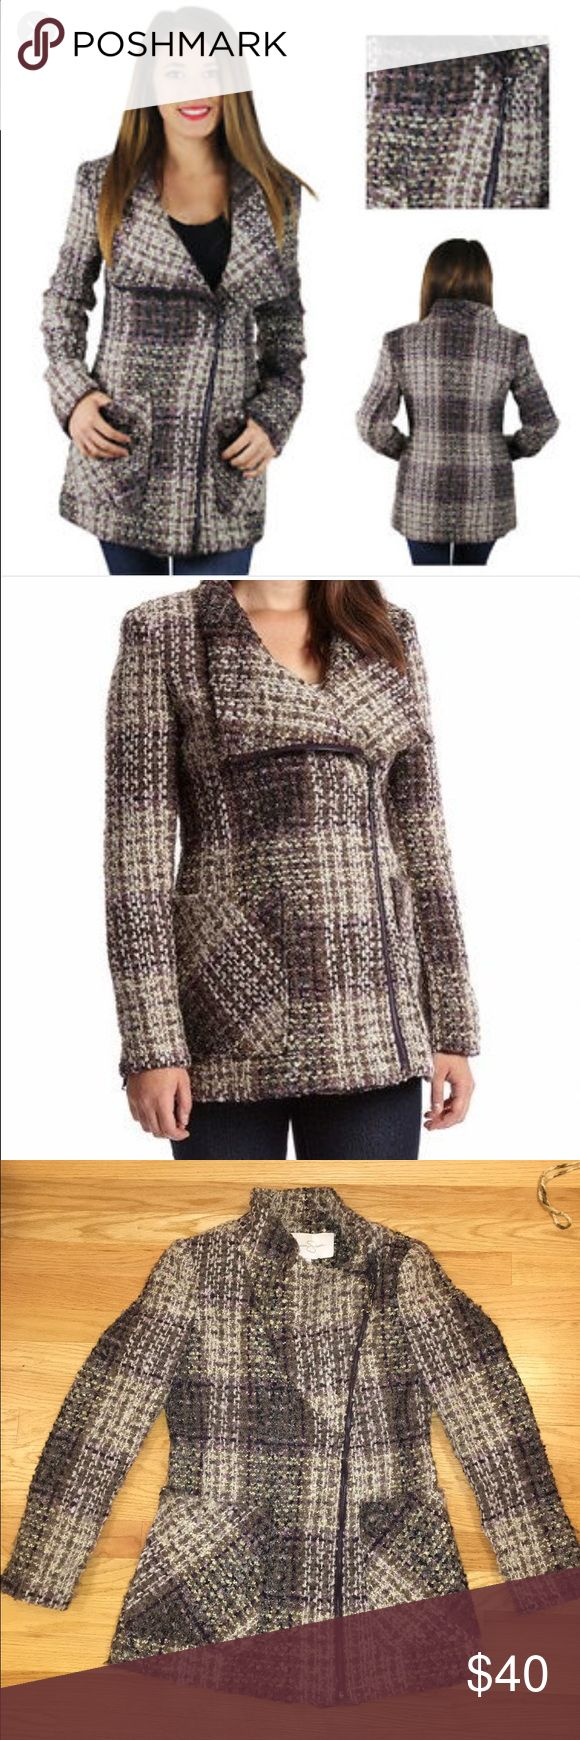 Jessica Simpson wool blend coat tones of lavender This jacket is beautiful from Jessica's collection. It's a wool blend, can be worn two ways. Either fully zipped or zipped with the collar hanging down. Beautiful trendy coat to add to your winter collection! Jessica Simpson Jackets & Coats Pea Coats